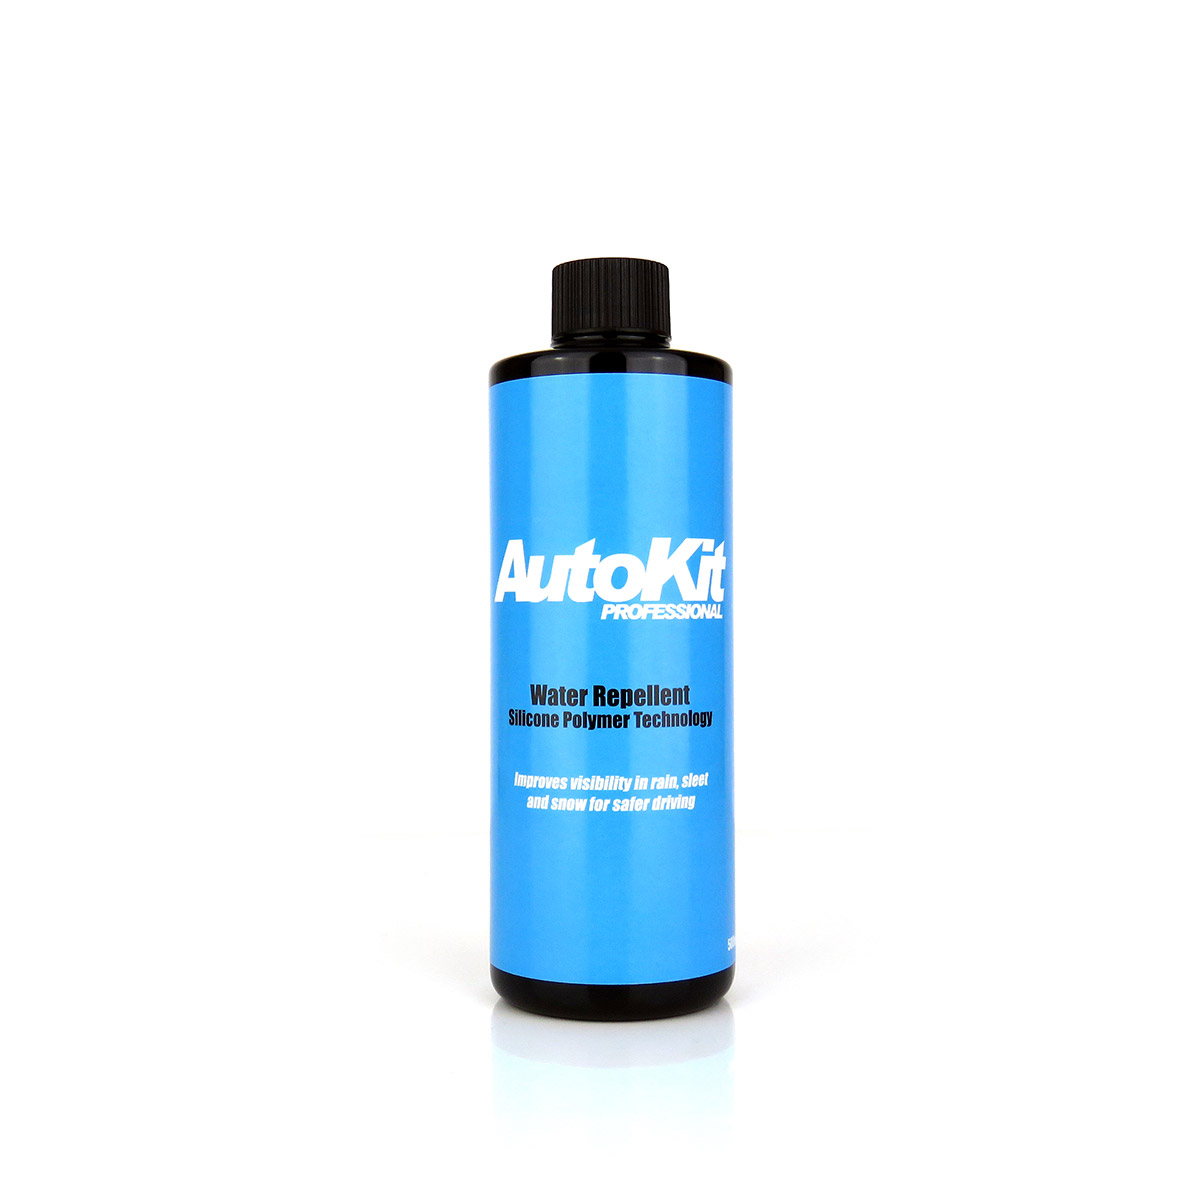 AutoKit Windscreen Rain Repellent